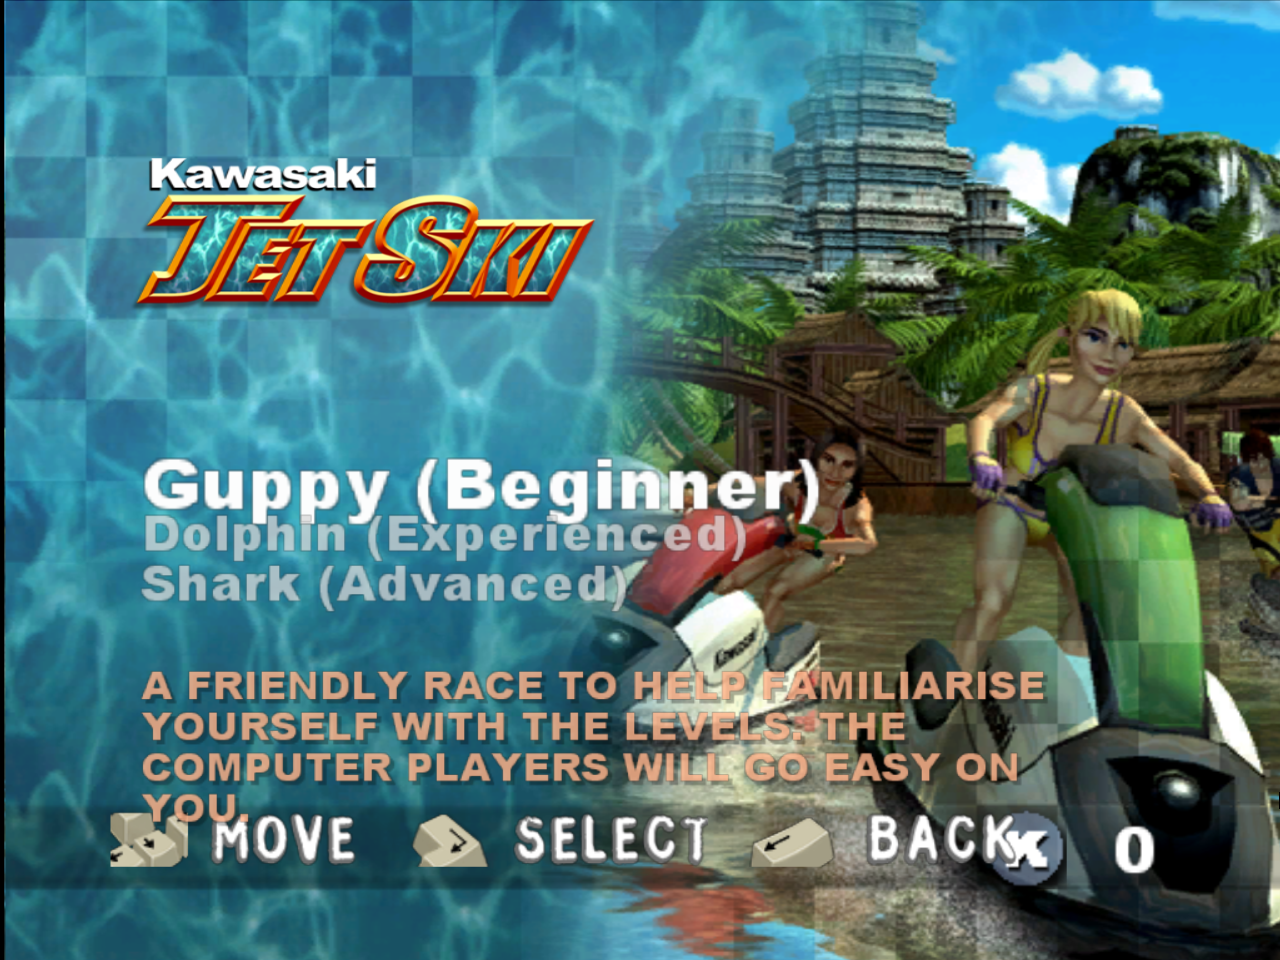 Kawasaki Jet Ski Windows Title screen / Level select